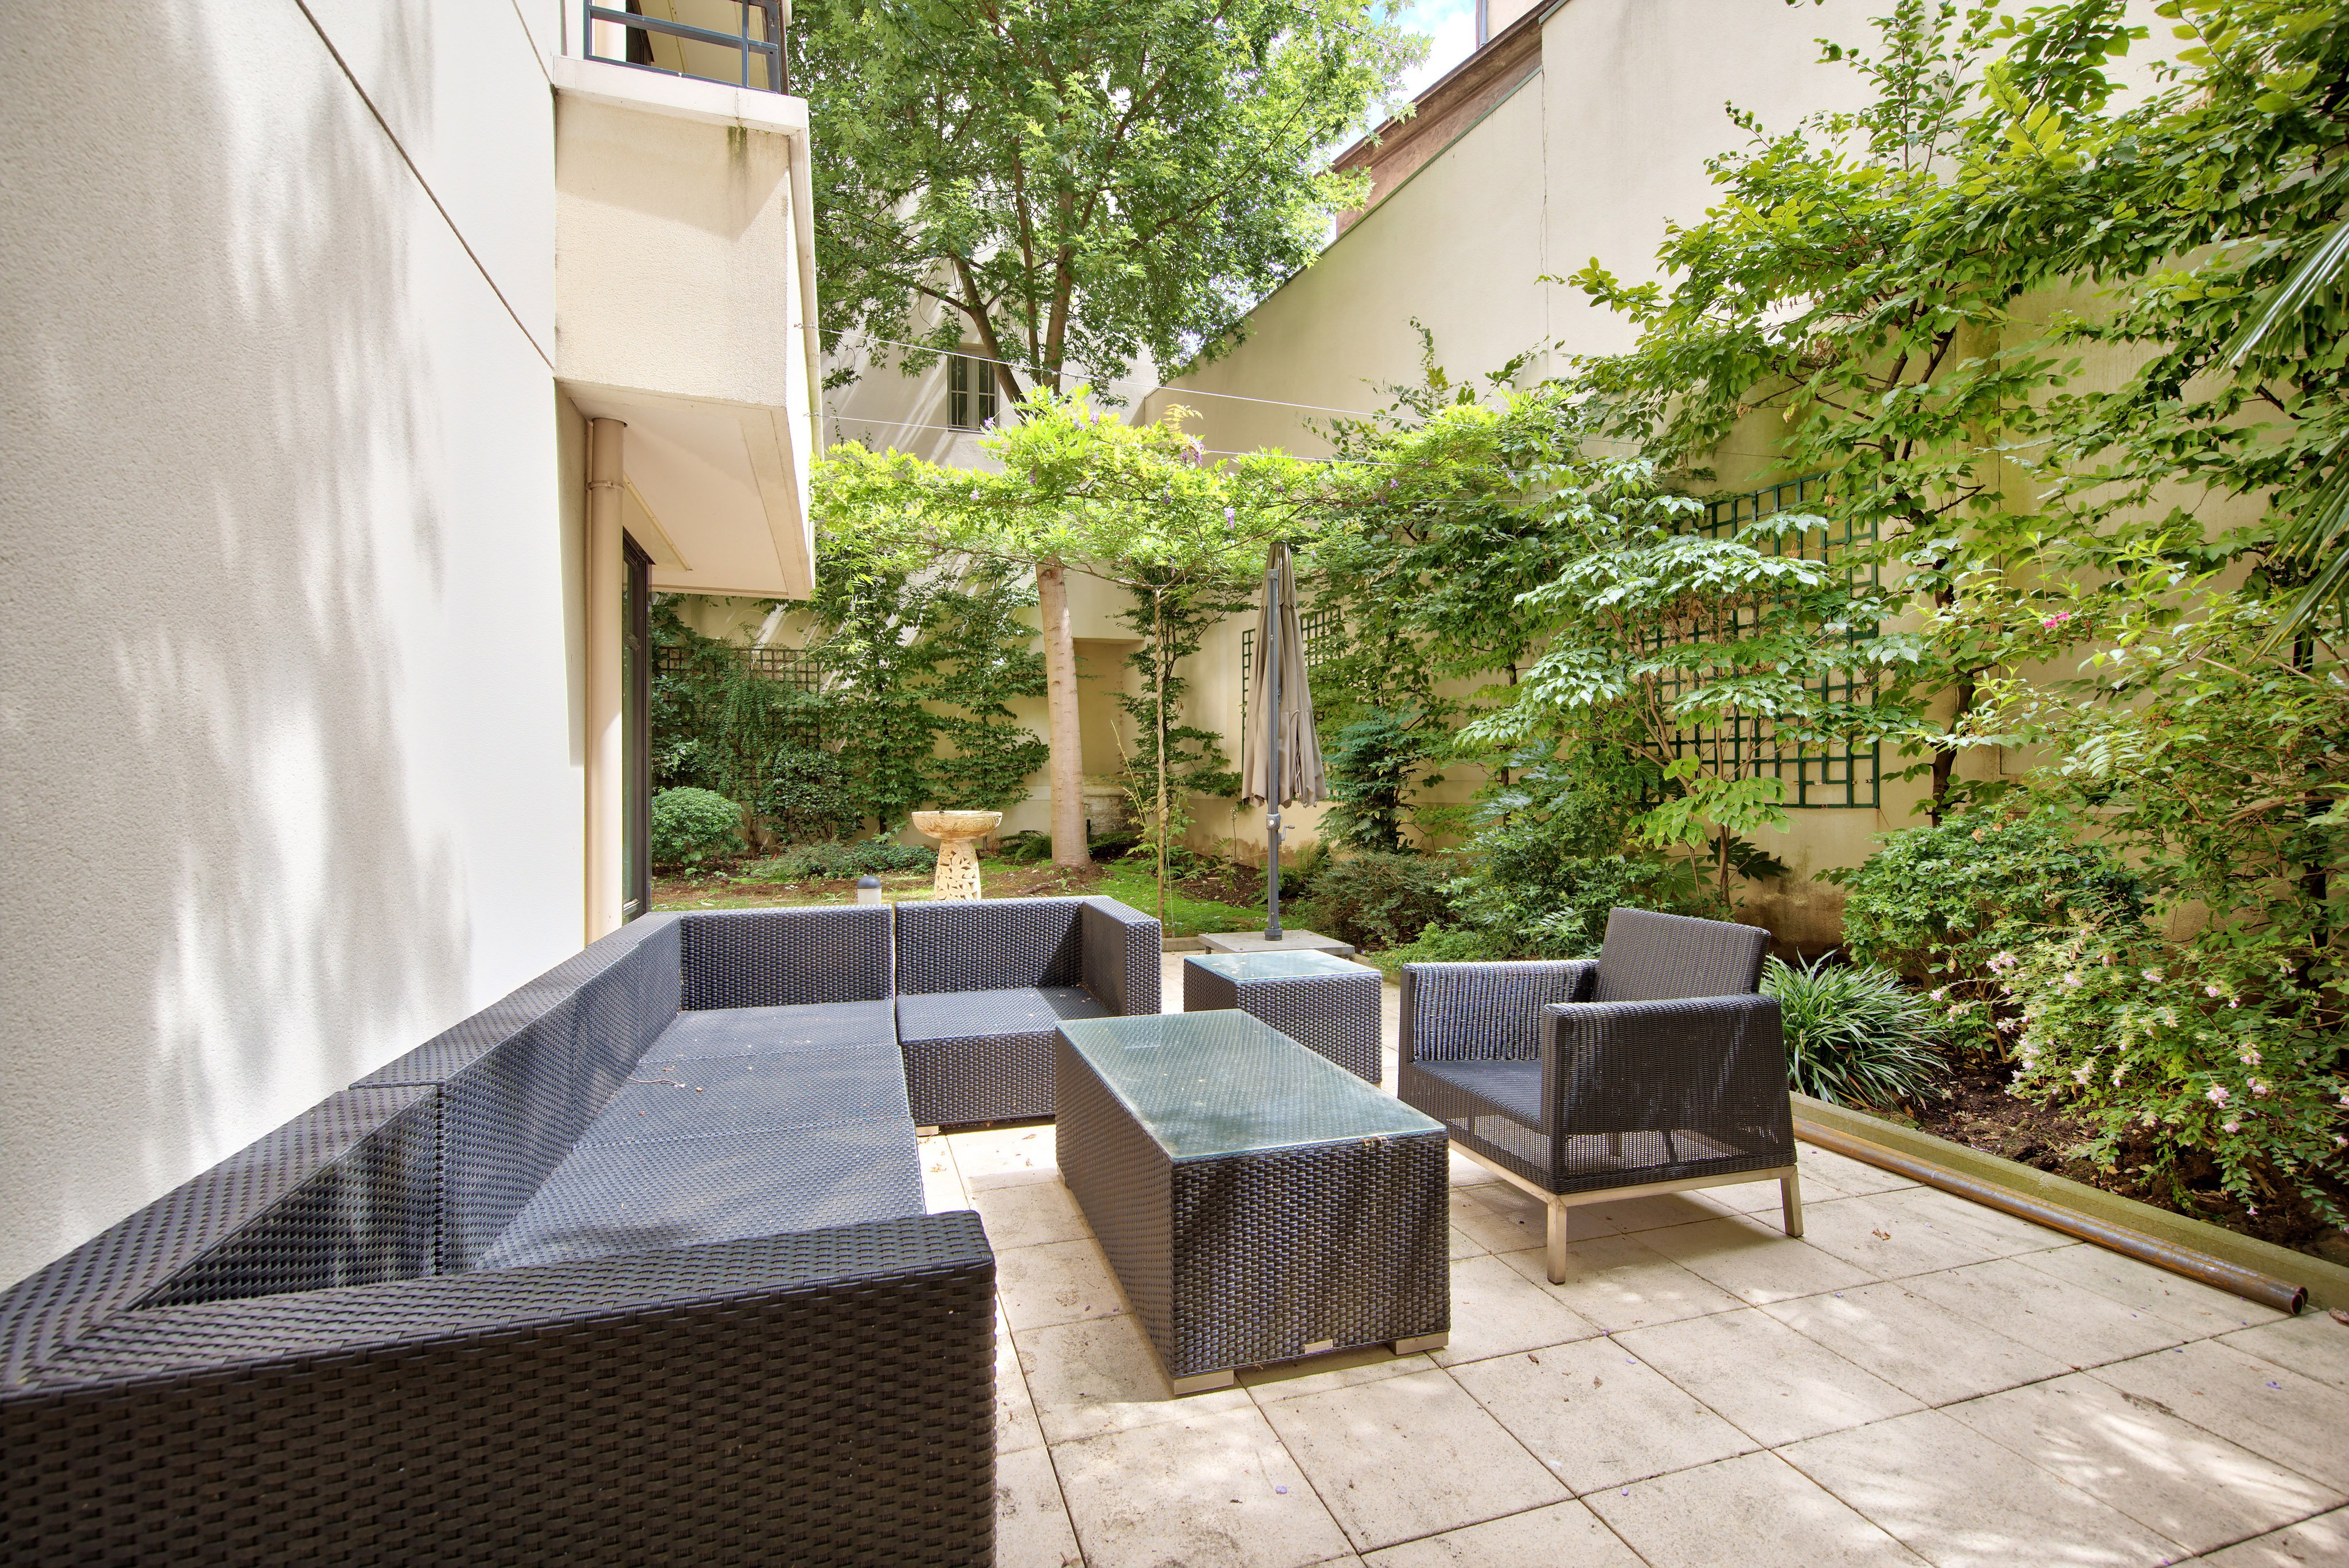 Additional photo for property listing at Paris 15th District – An exceptional property  Paris, Paris,75015 France